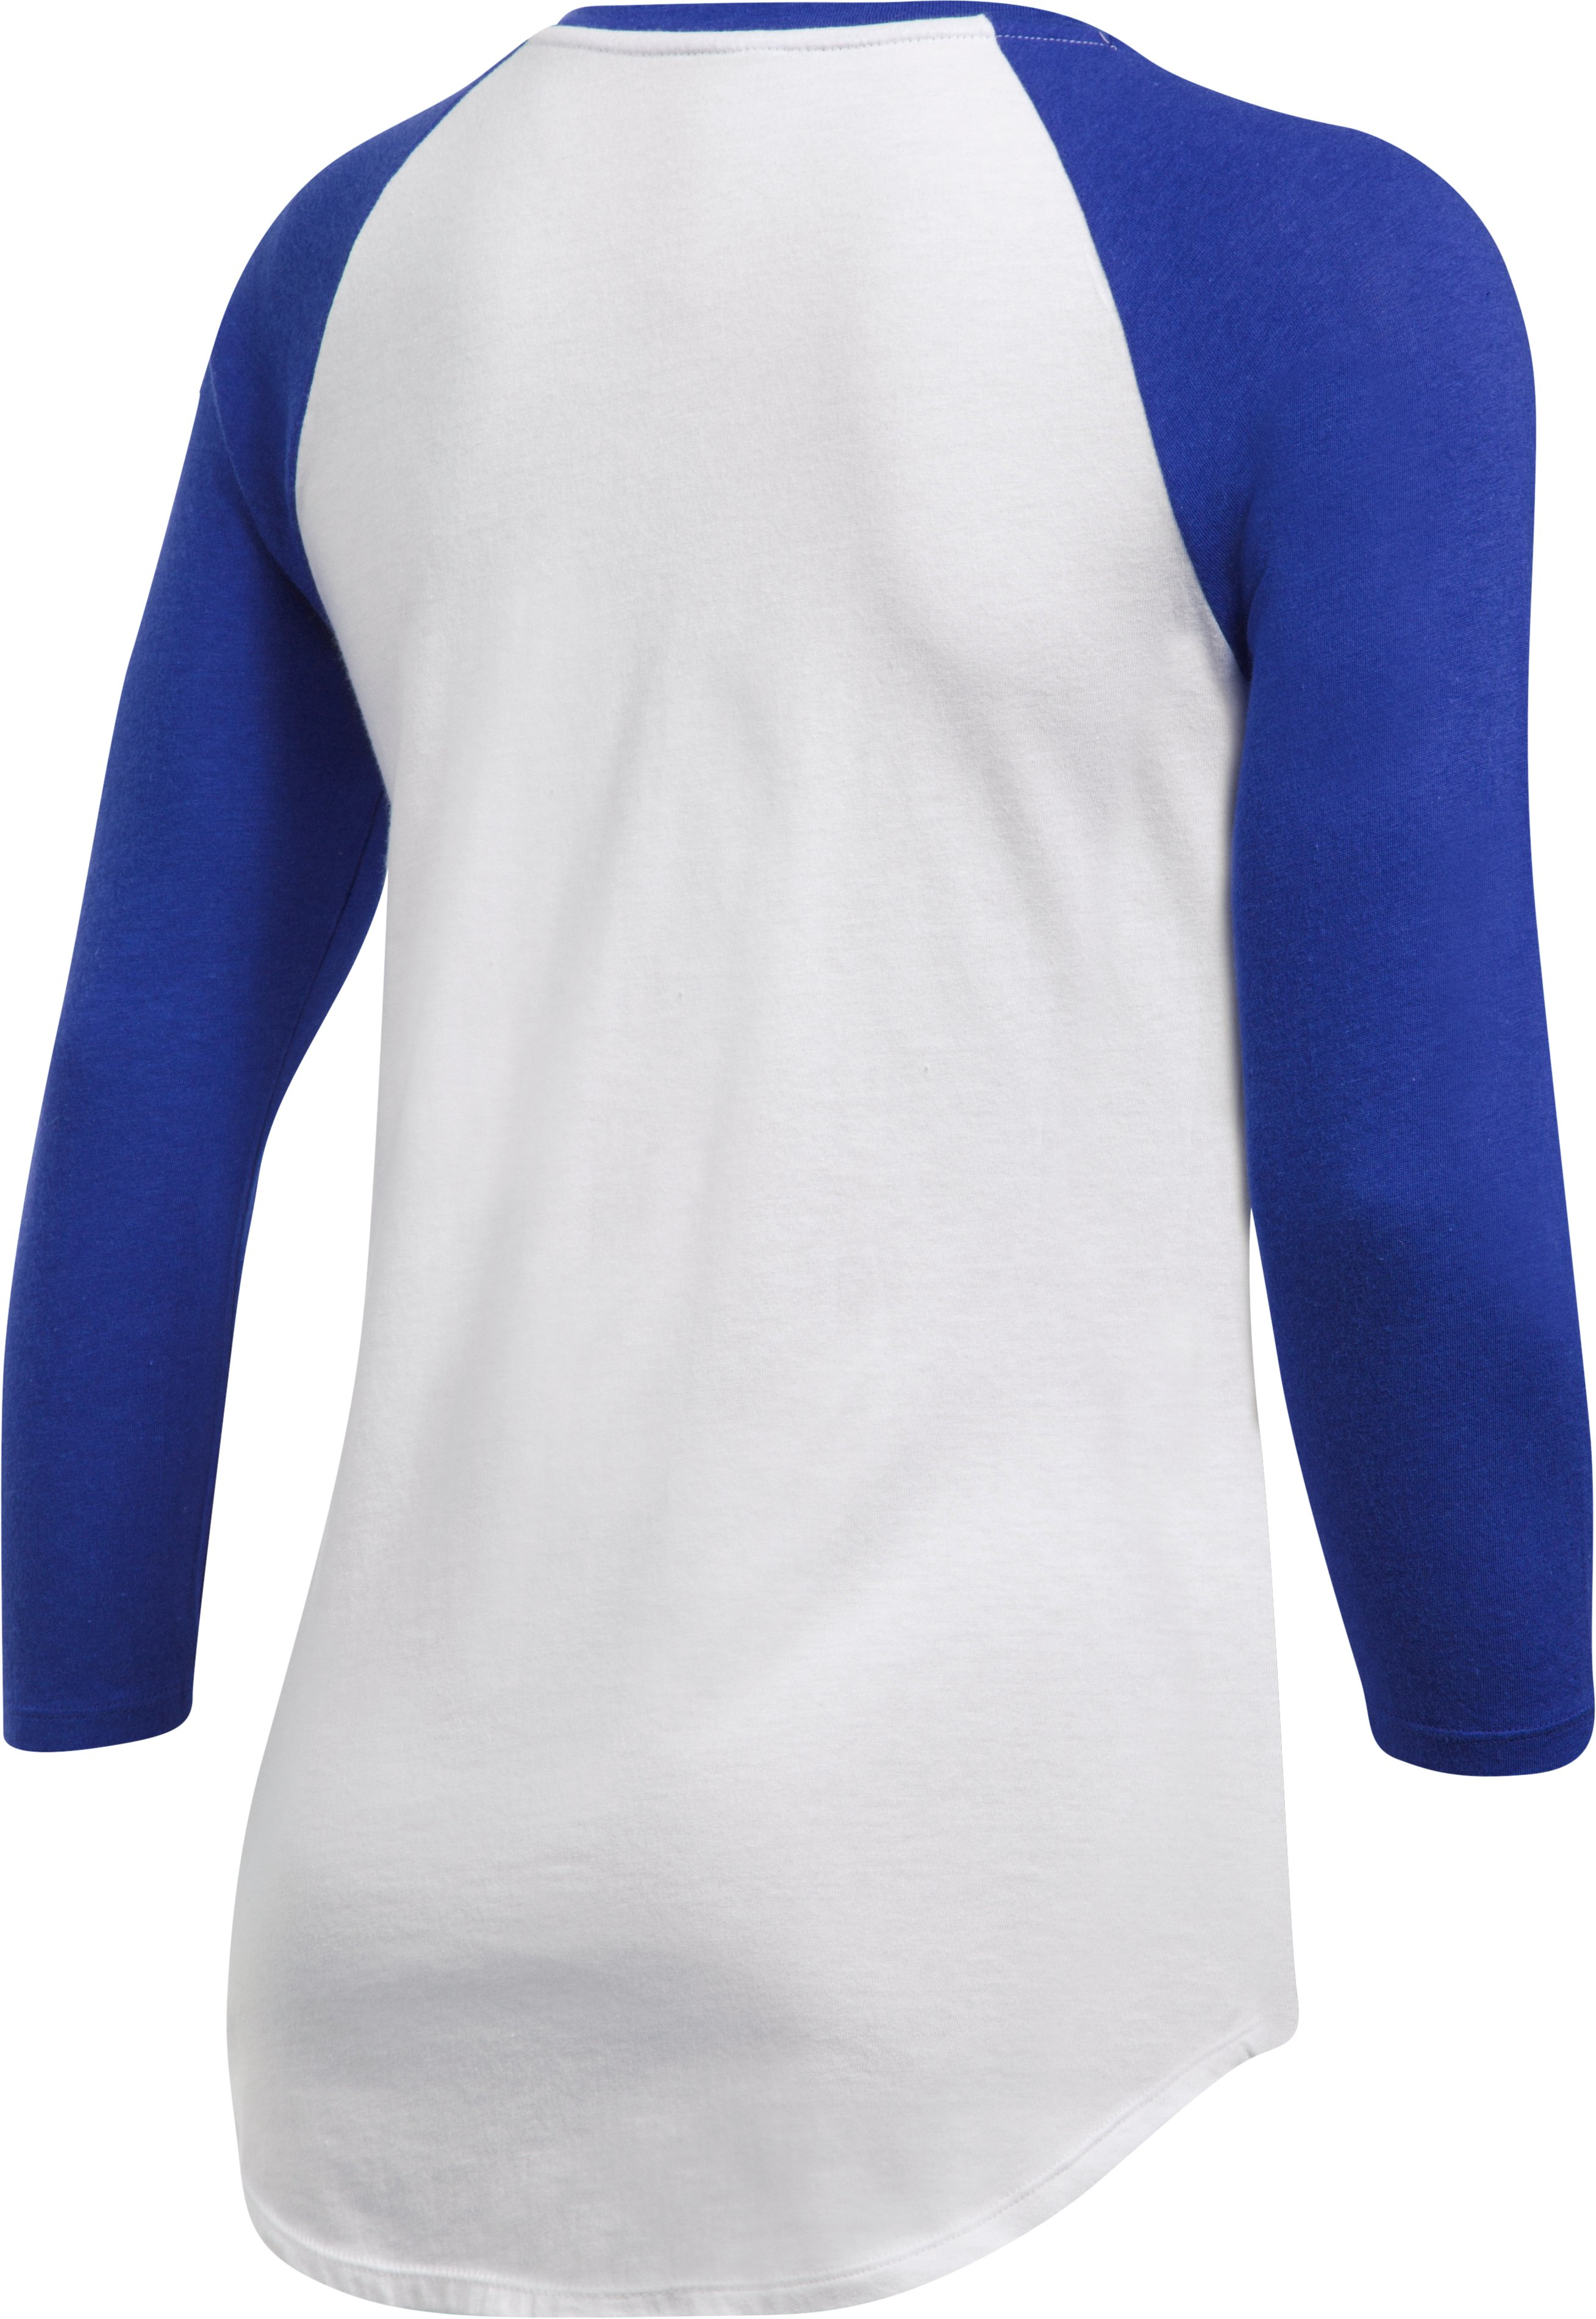 Women's Texas Rangers ¾ Sleeve T-Shirt, Royal, undefined